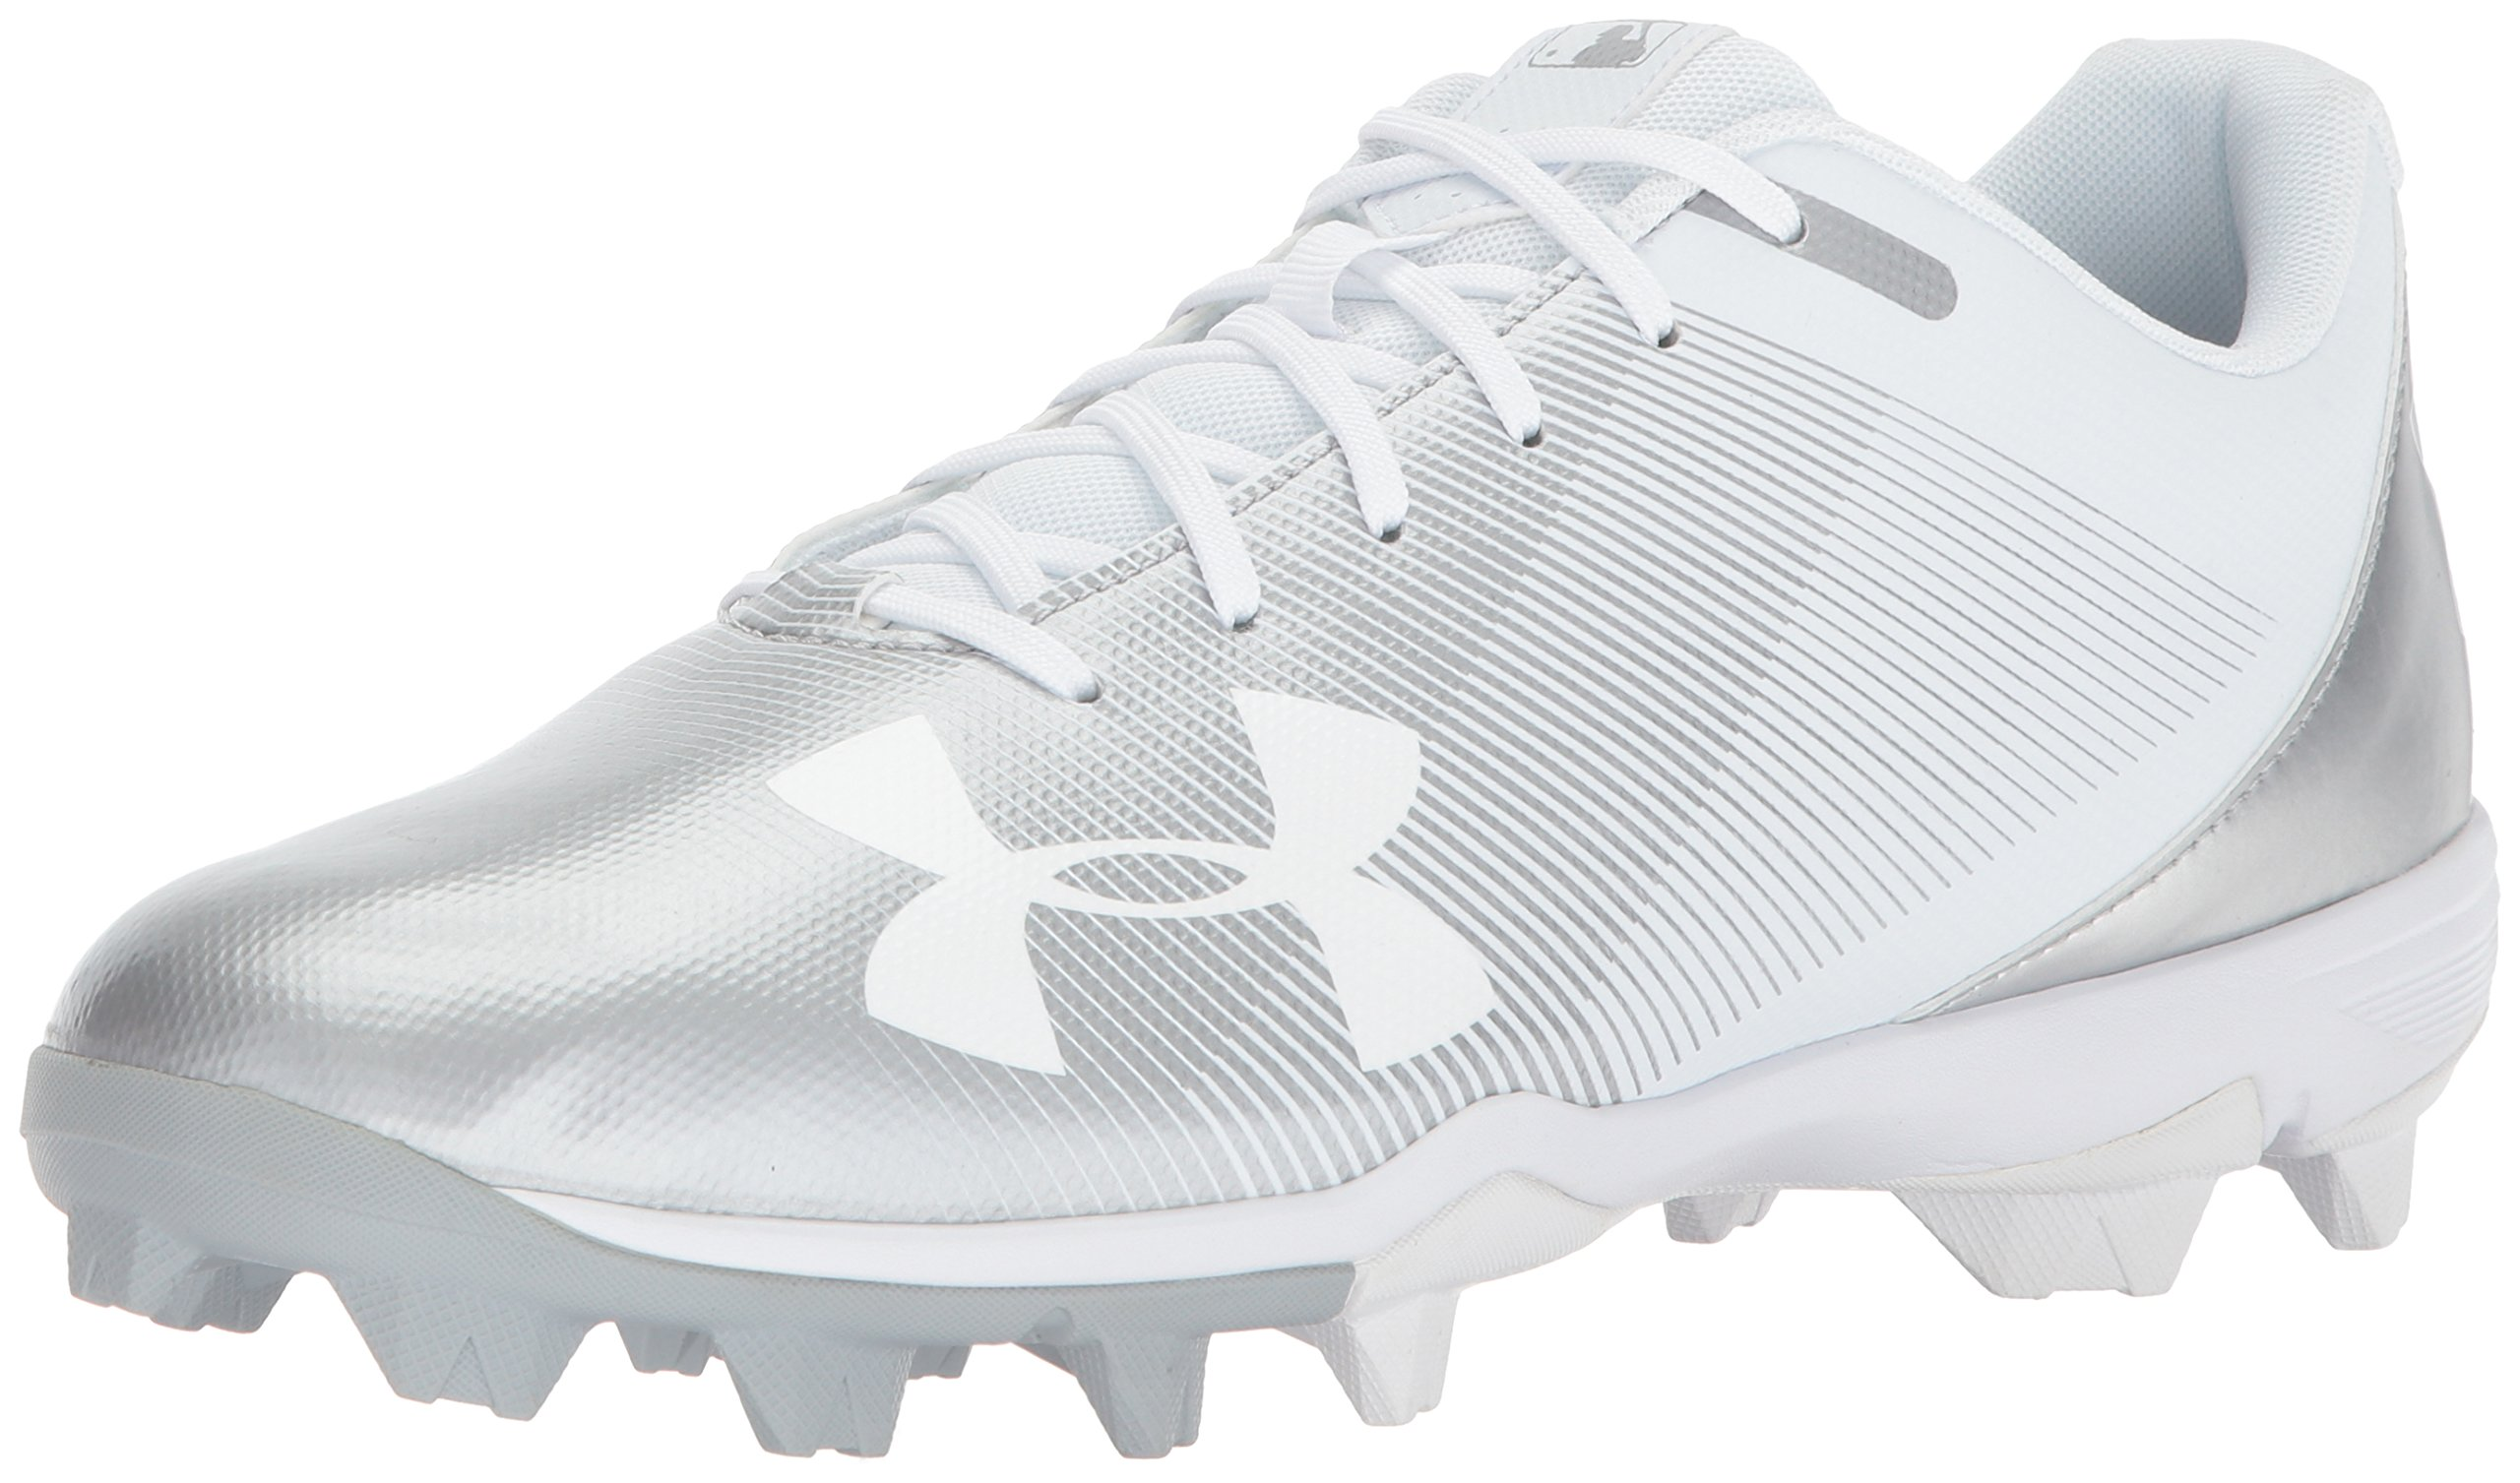 Under Armour Men's Leadoff Low RM Baseball Shoe, White (100)/White, 11 by Under Armour